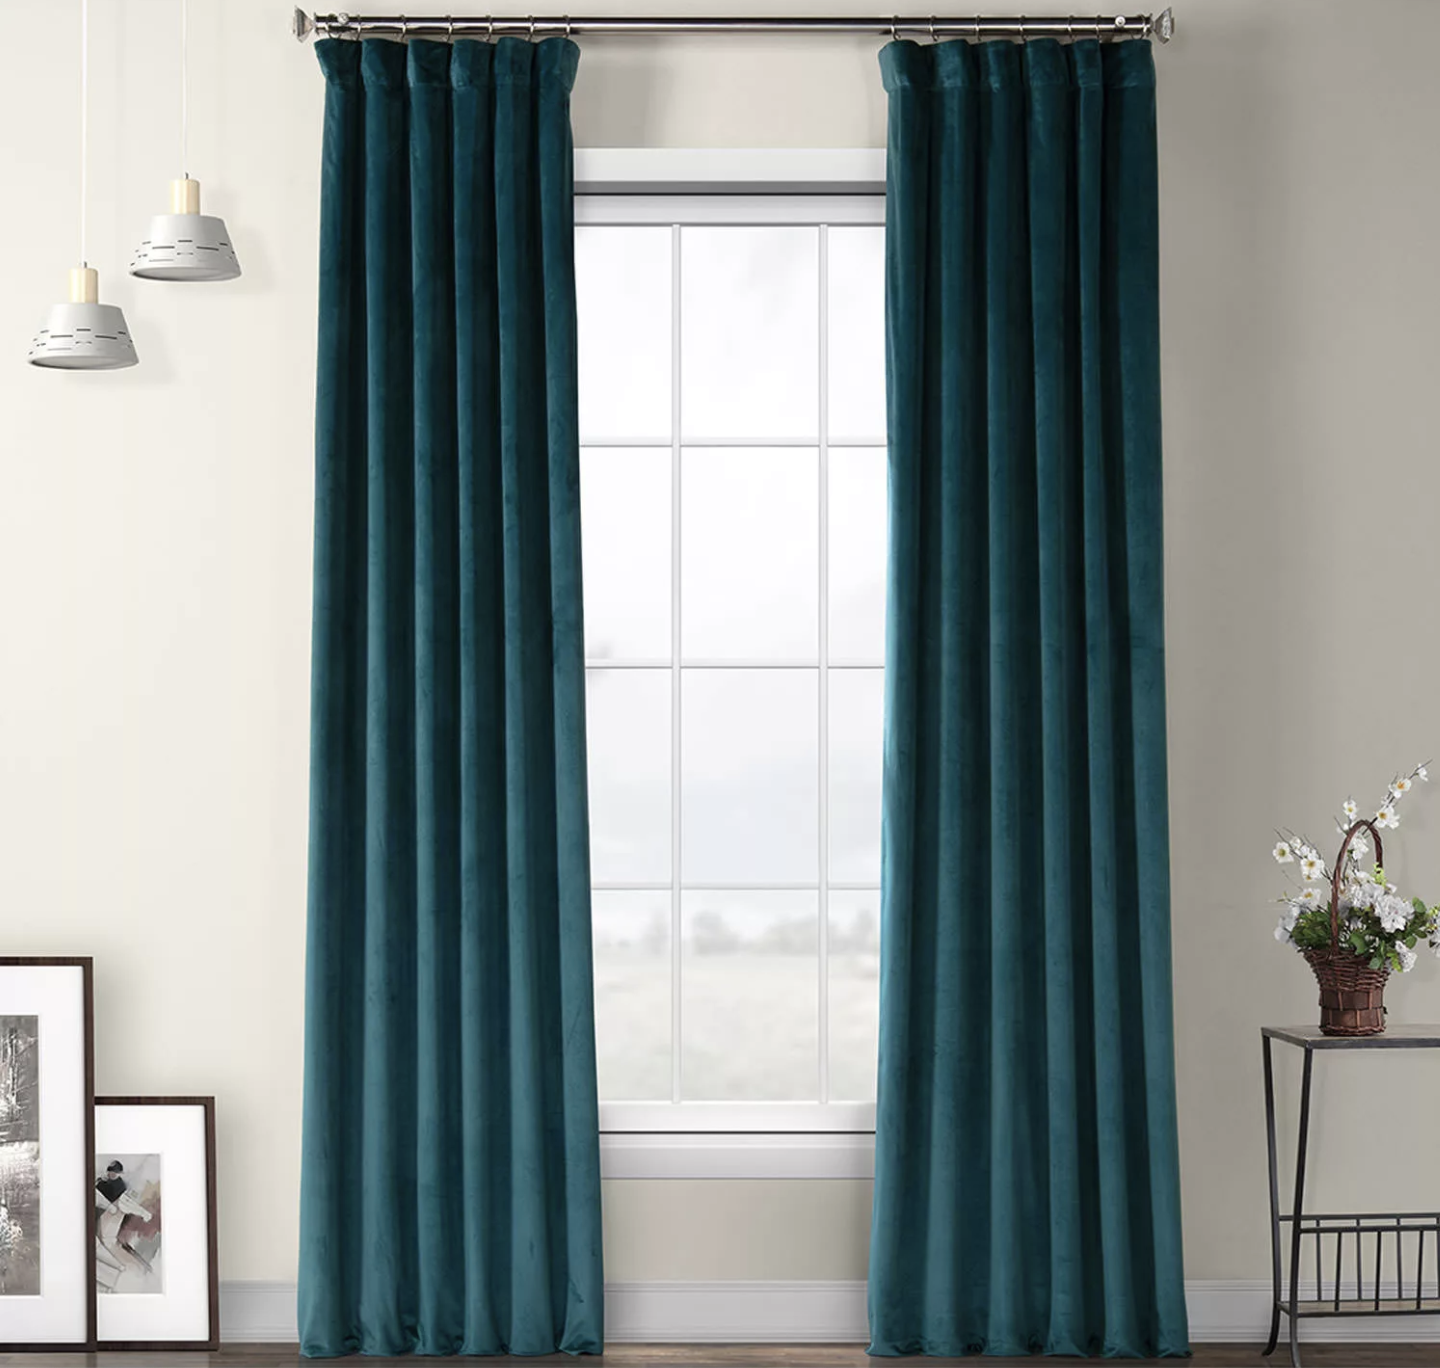 two deep sea teal heritage plush velvet curtains hanging from a window